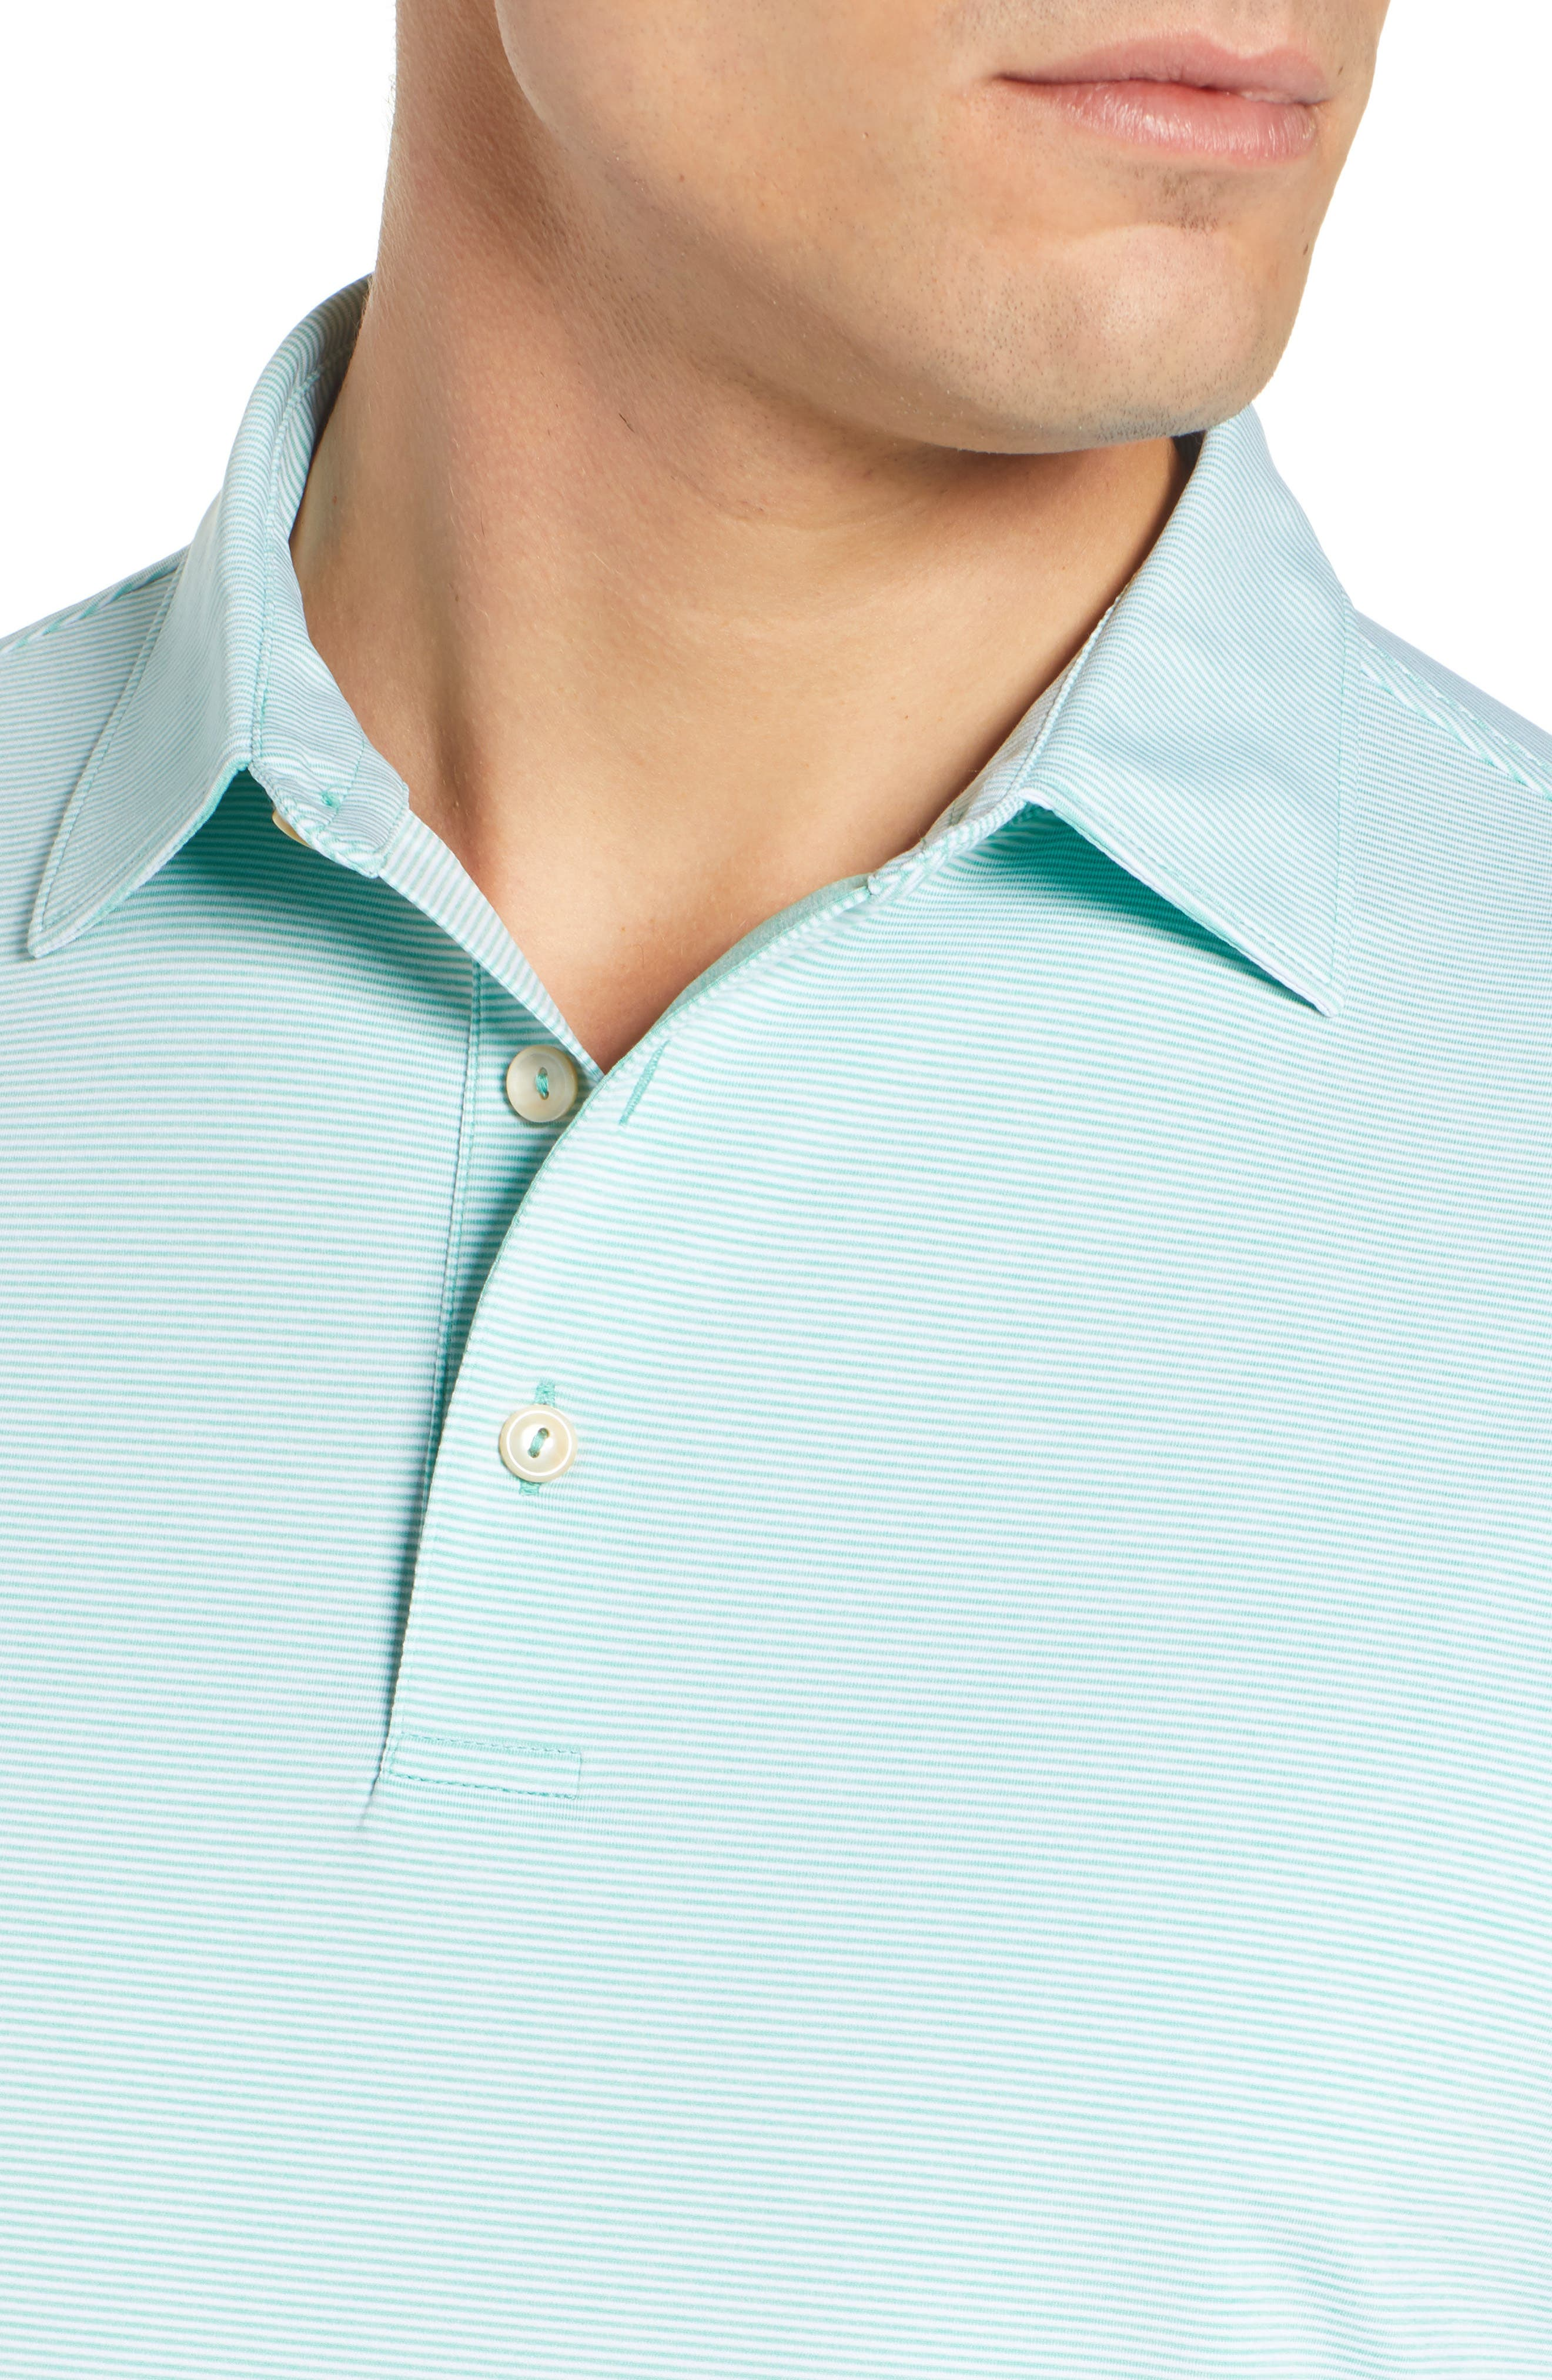 Jubilee Stripe Jersey Polo,                             Alternate thumbnail 4, color,                             MEADOW